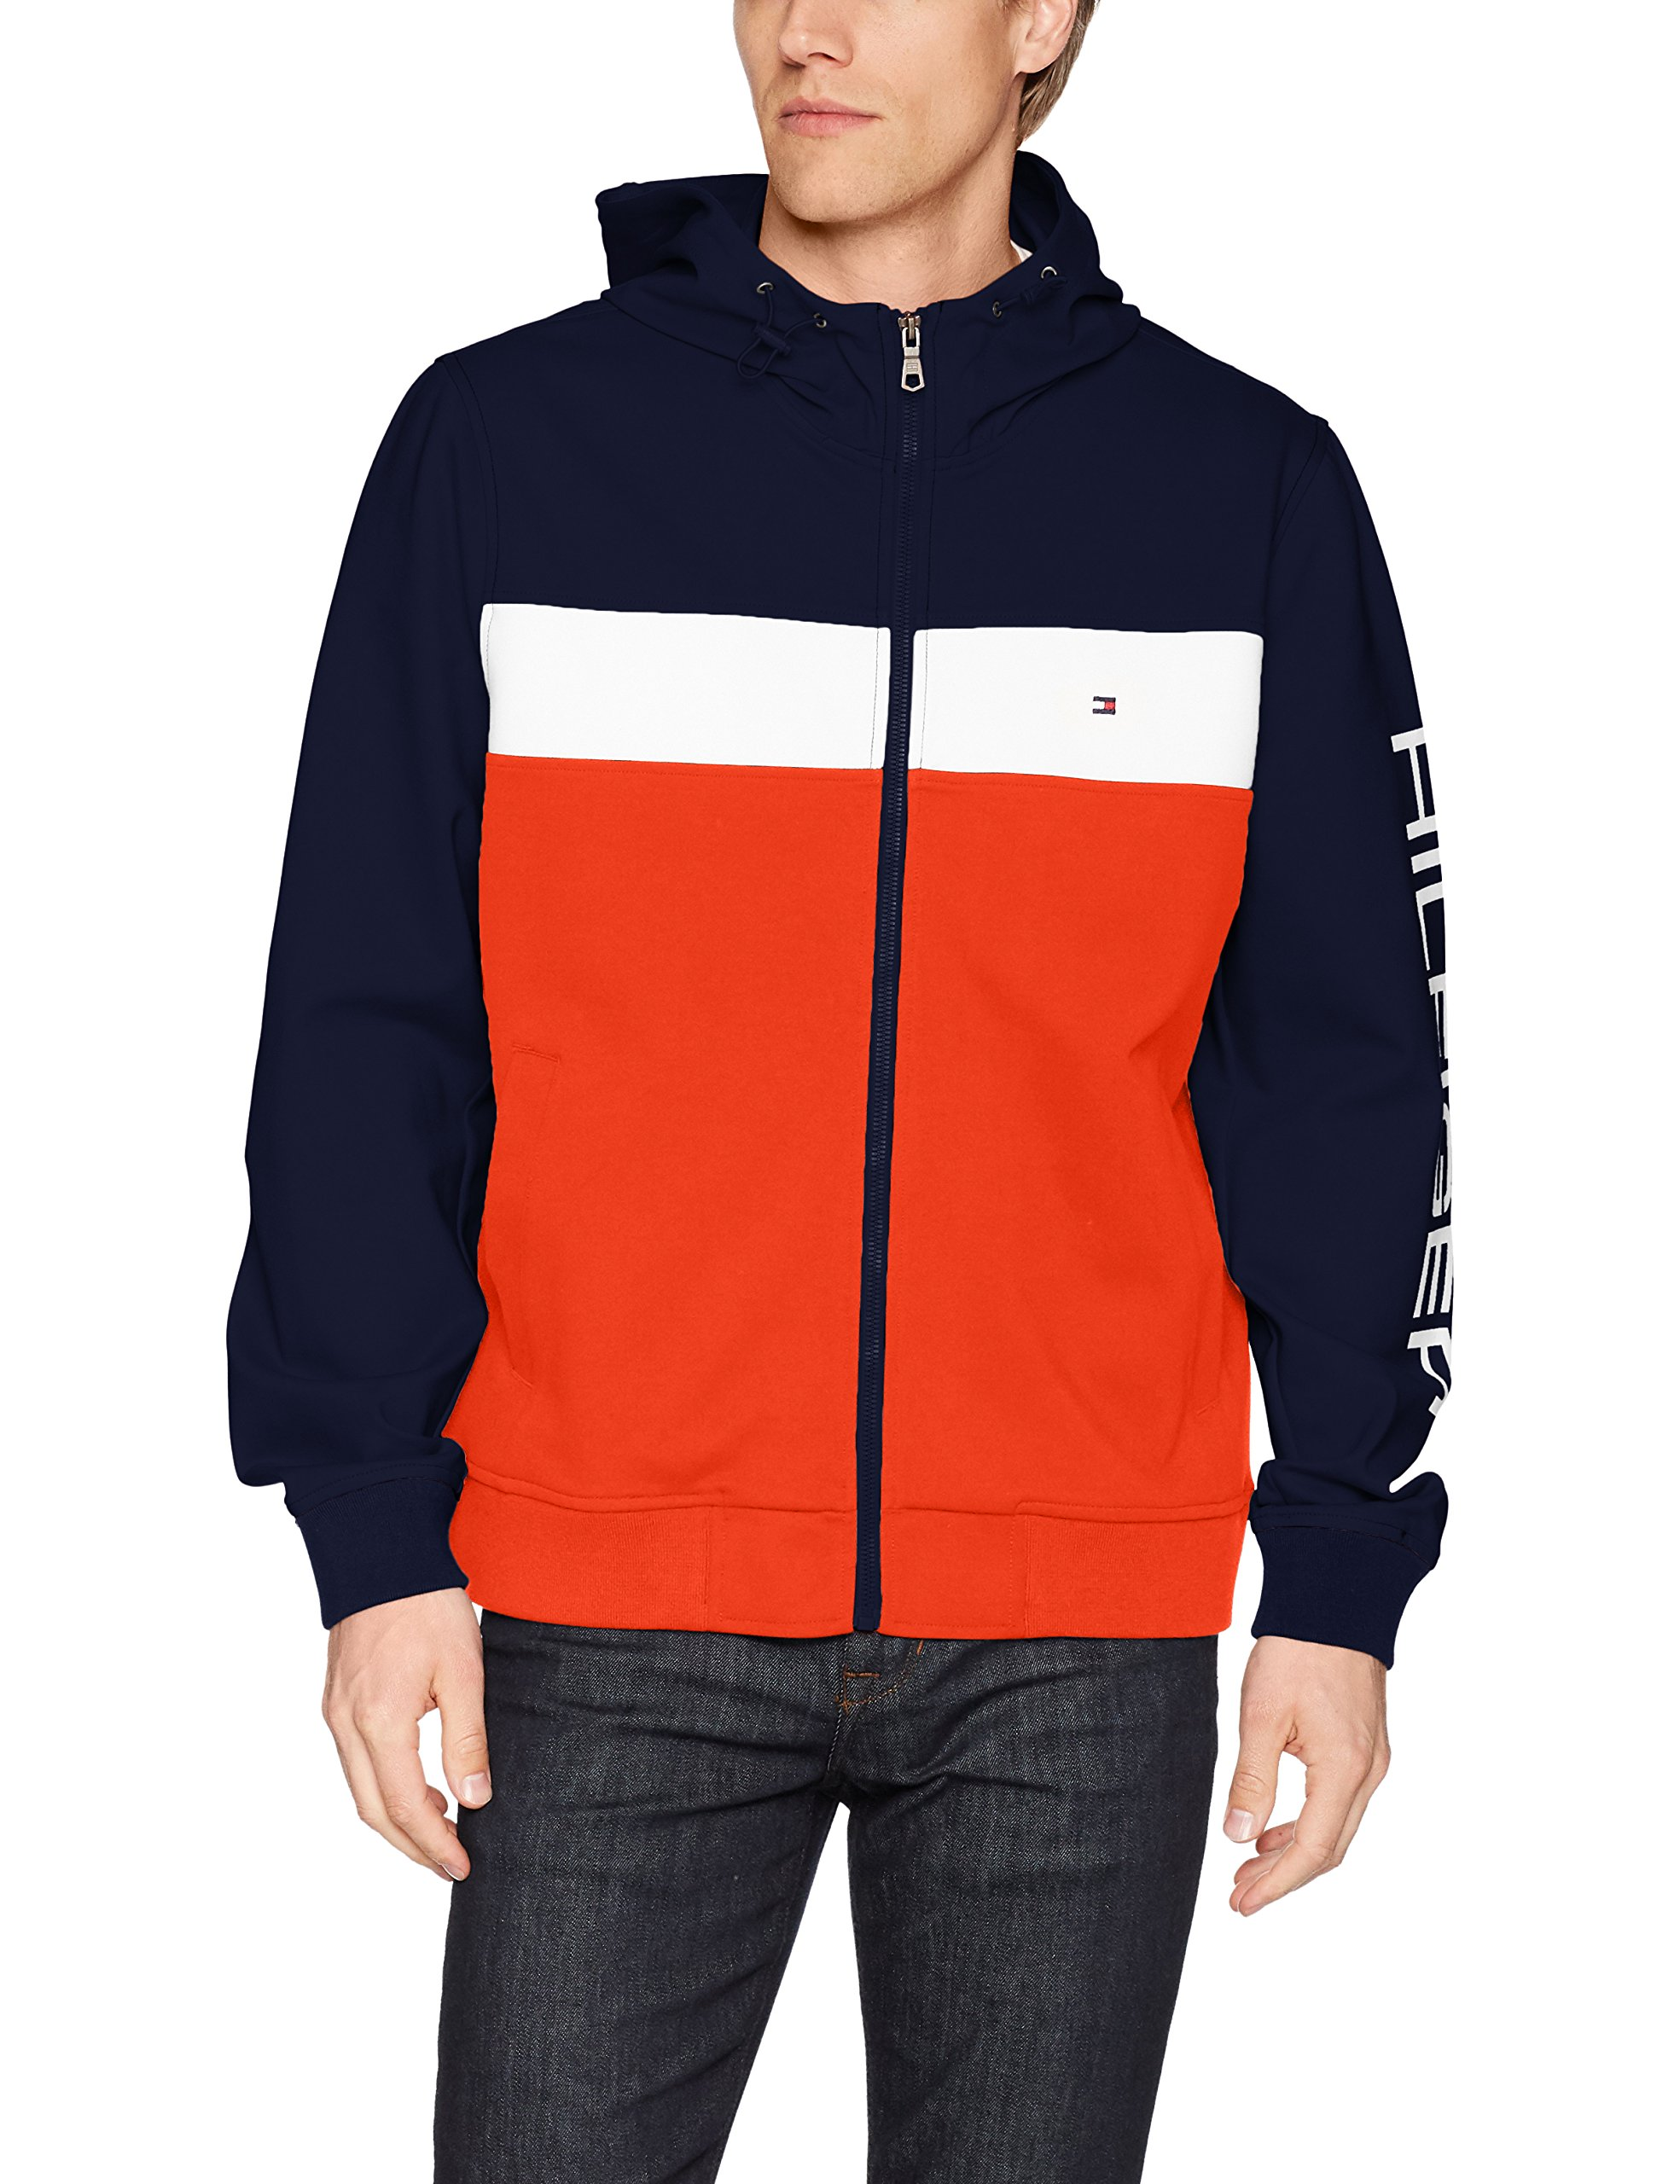 Tommy Hilfiger Men's Retro Colorblocked Hooded Track Jacket, Navy/White/Orange w. Contrast Zipper, Medium by Tommy Hilfiger